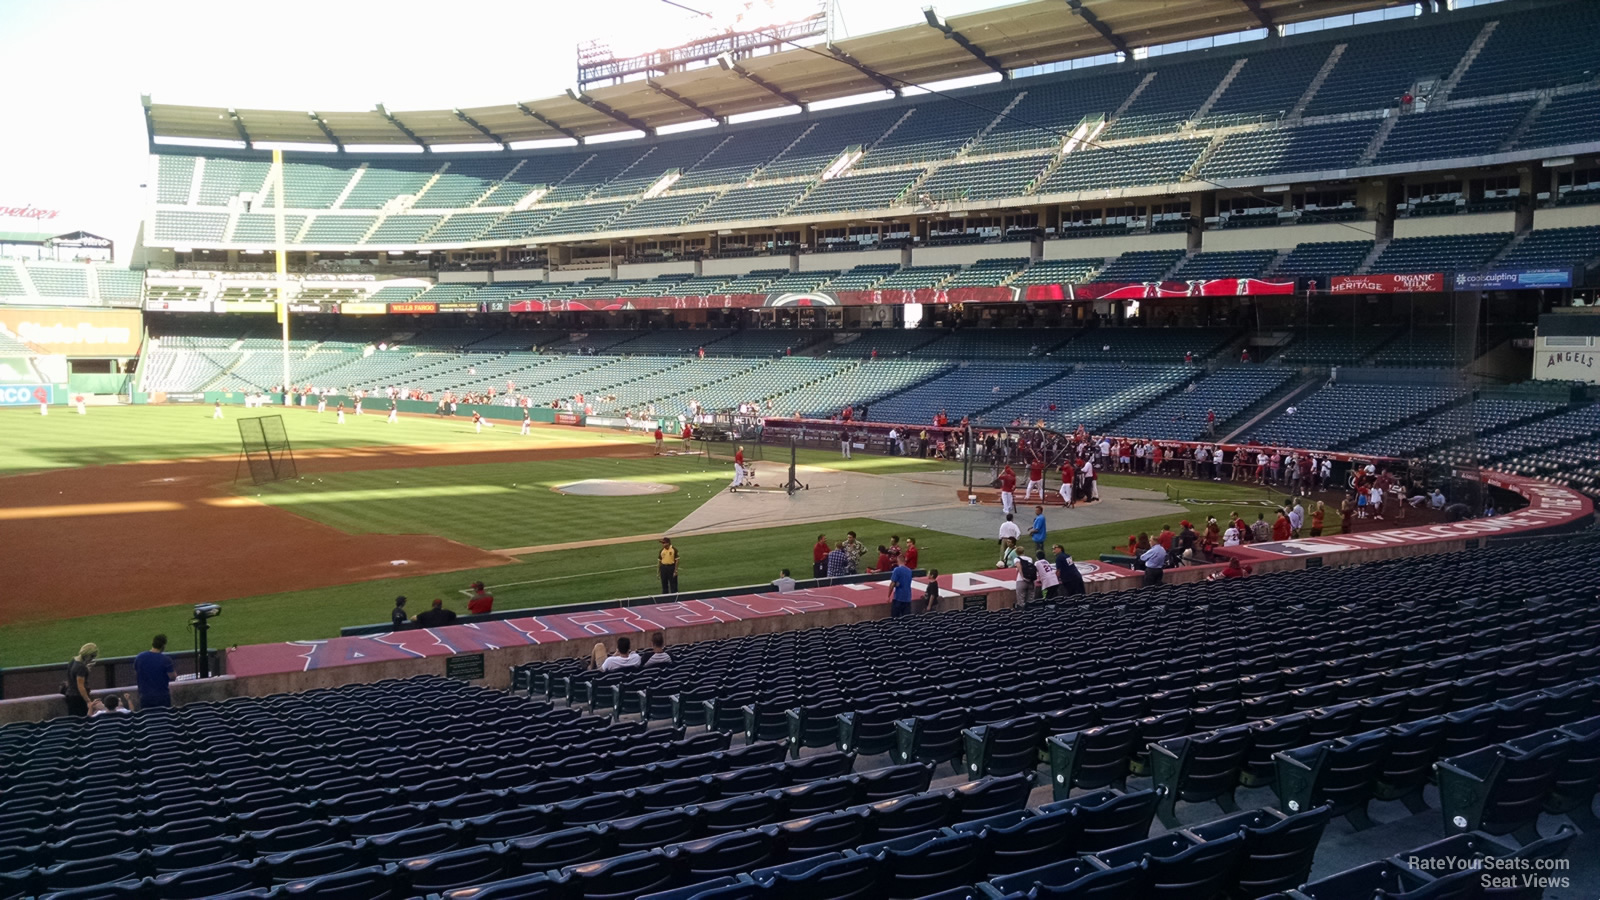 Angel Stadium Section 110 - RateYourSeats.com